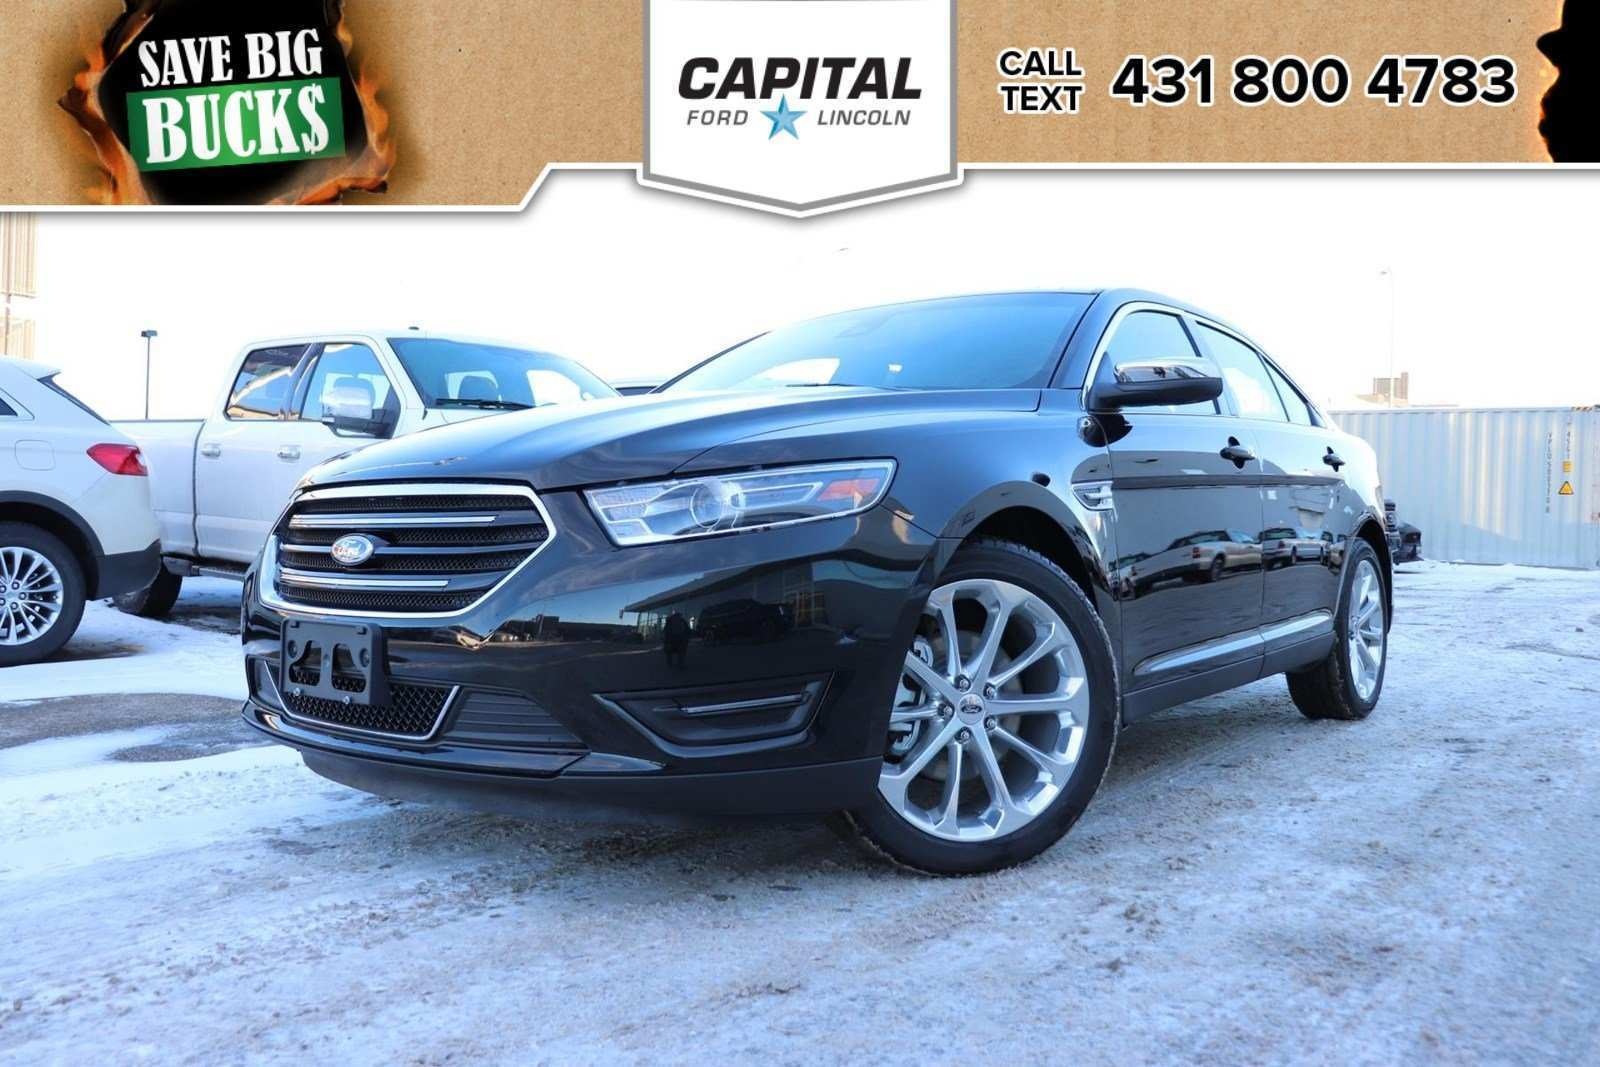 51 The Best 2019 Ford Taurus Research New